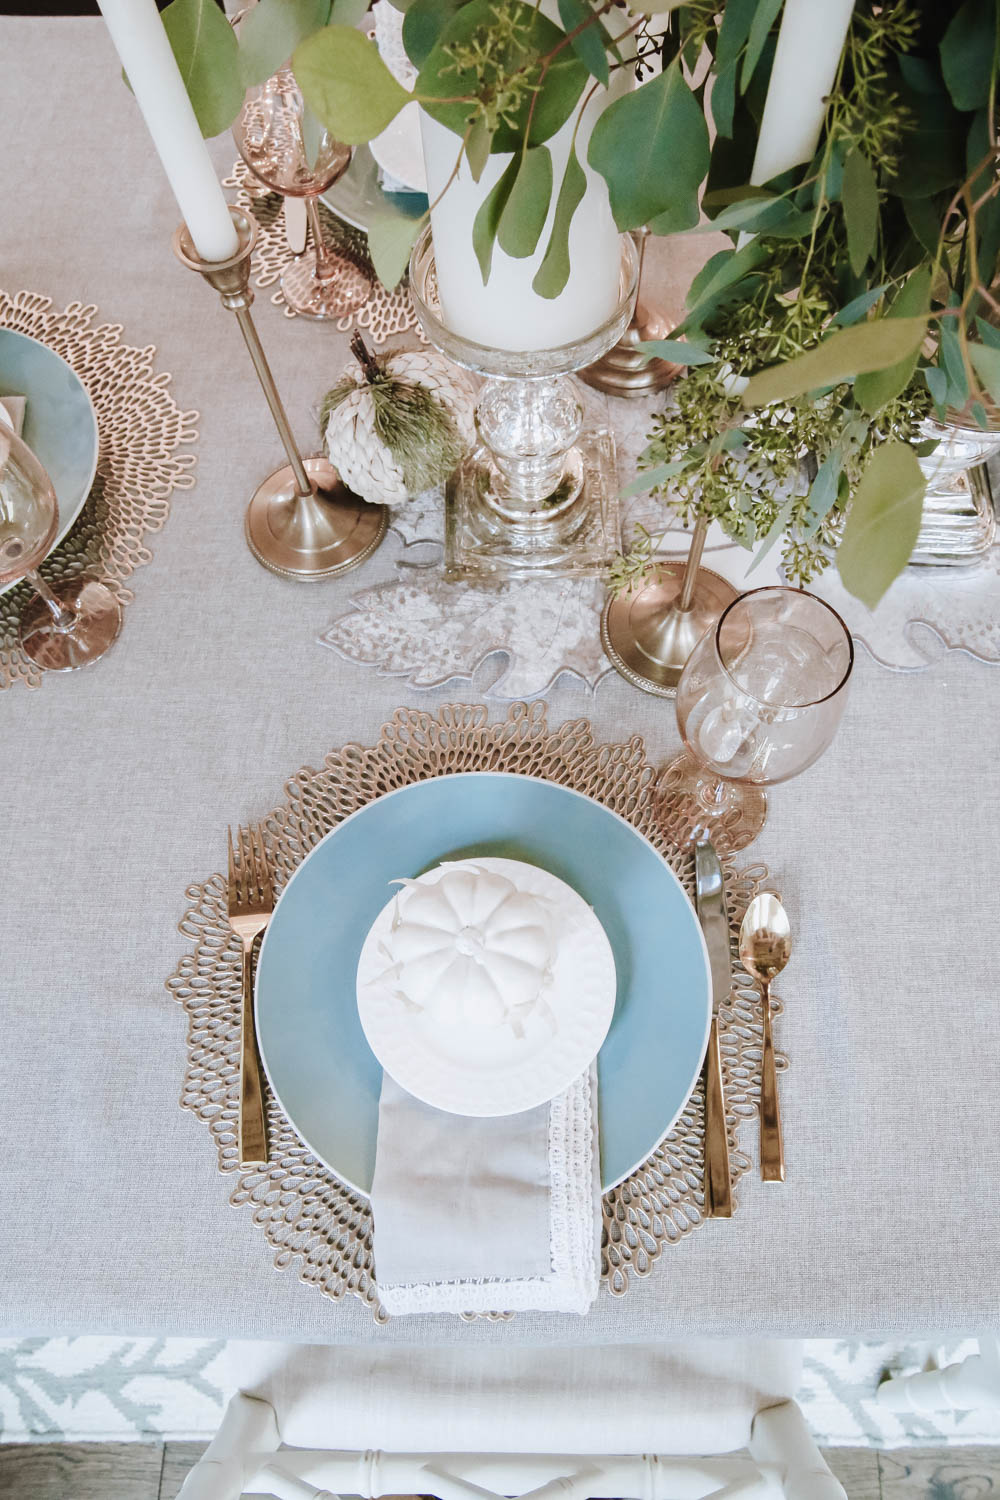 Create layers when decorating your table with chargers, plates, salad plates and more! #ABlissfulNest #falldecor #thanksgiving